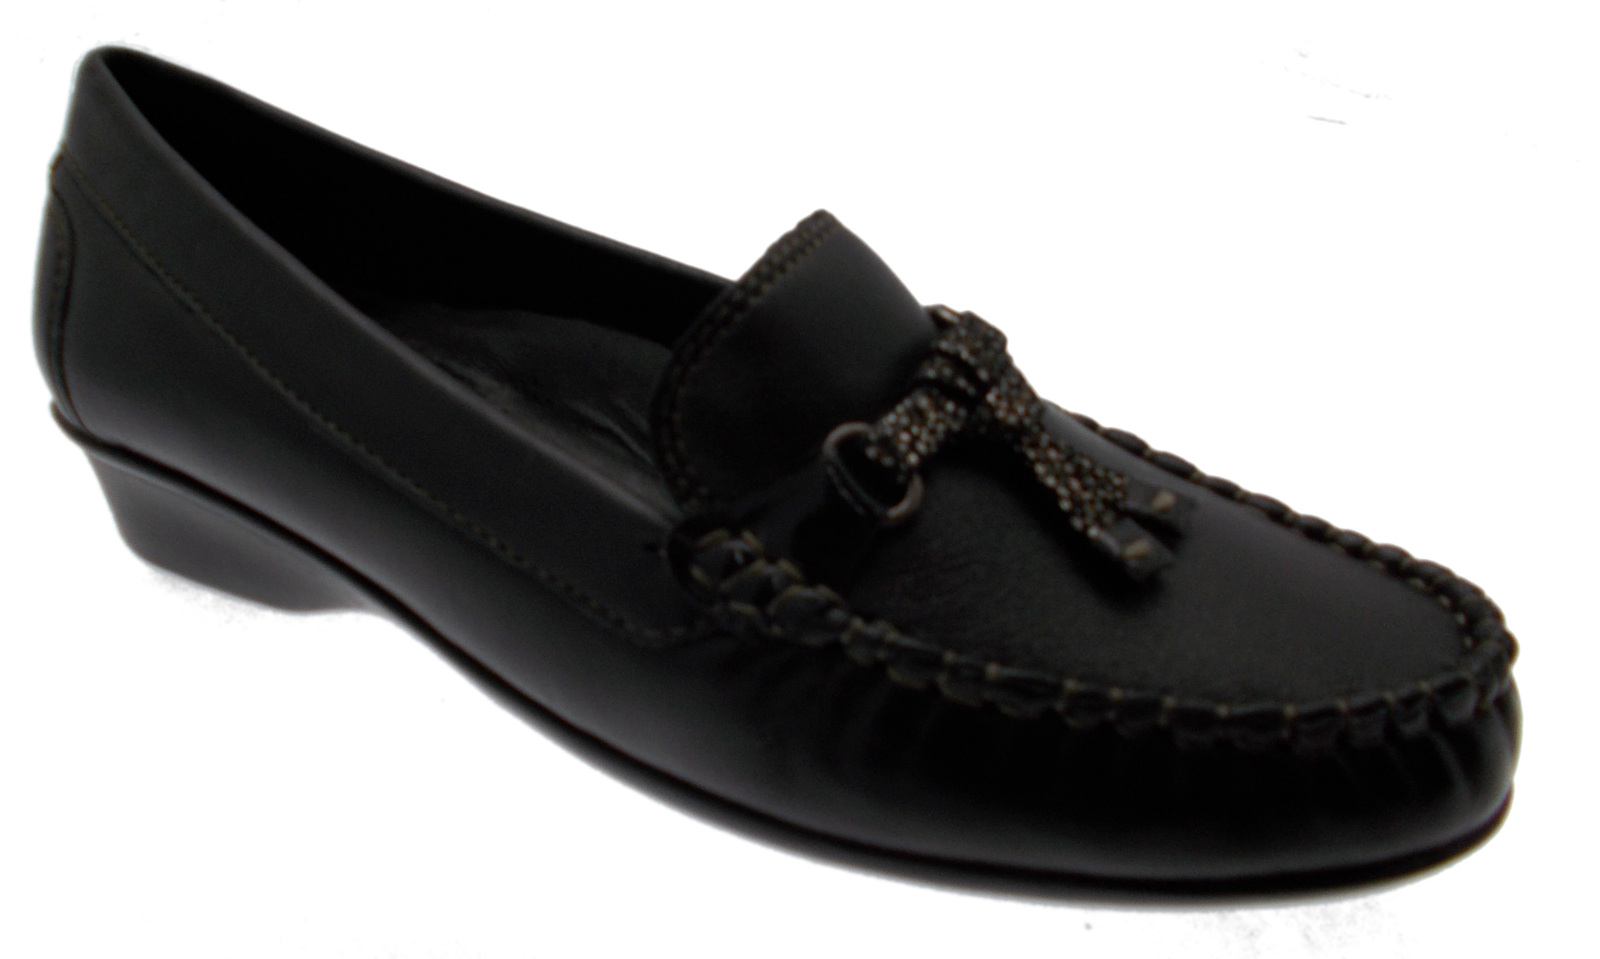 Moccasin classic wedge black leather woman shoe terminal